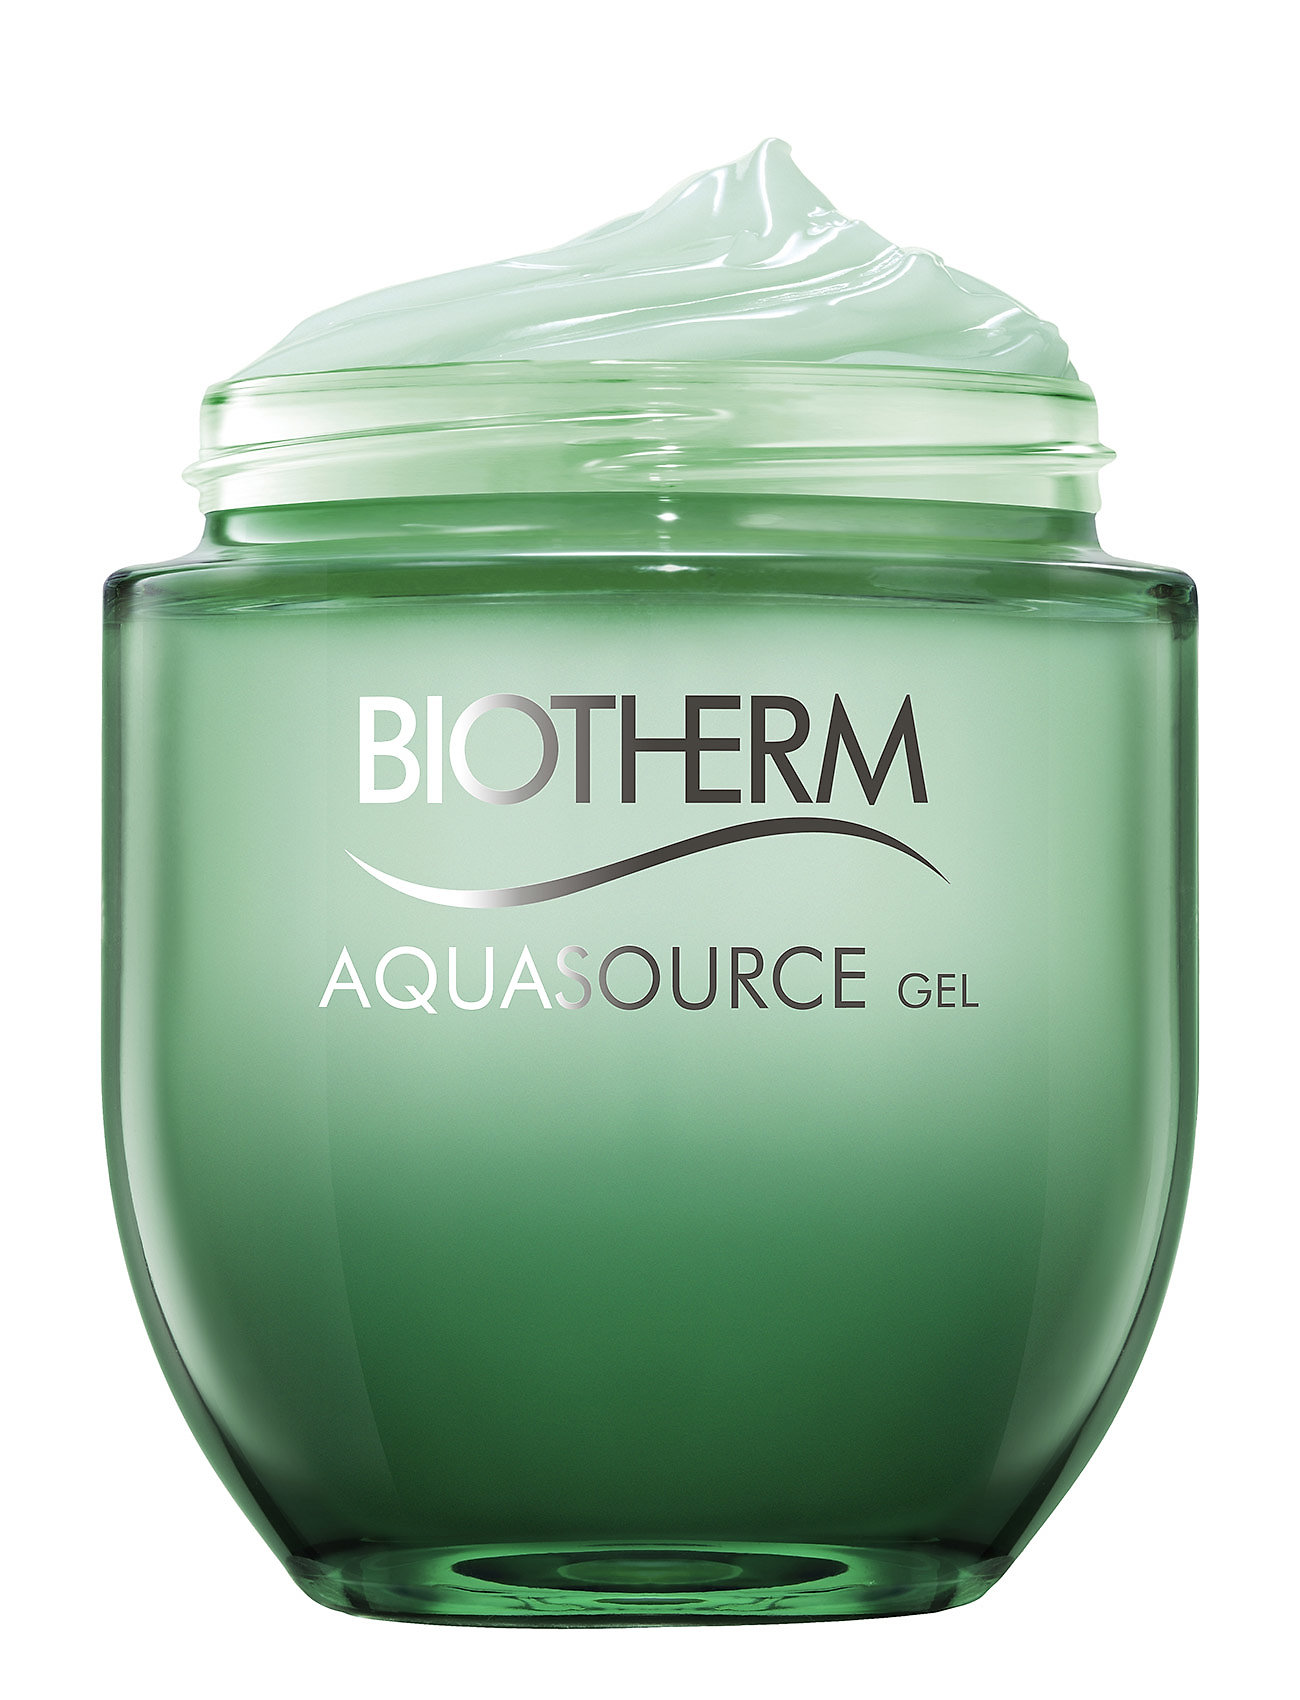 Image of Aquasource Gel Normal Skin 125 Ml Beauty WOMEN Skin Care Face Day Creams Nude Biotherm (3318637205)